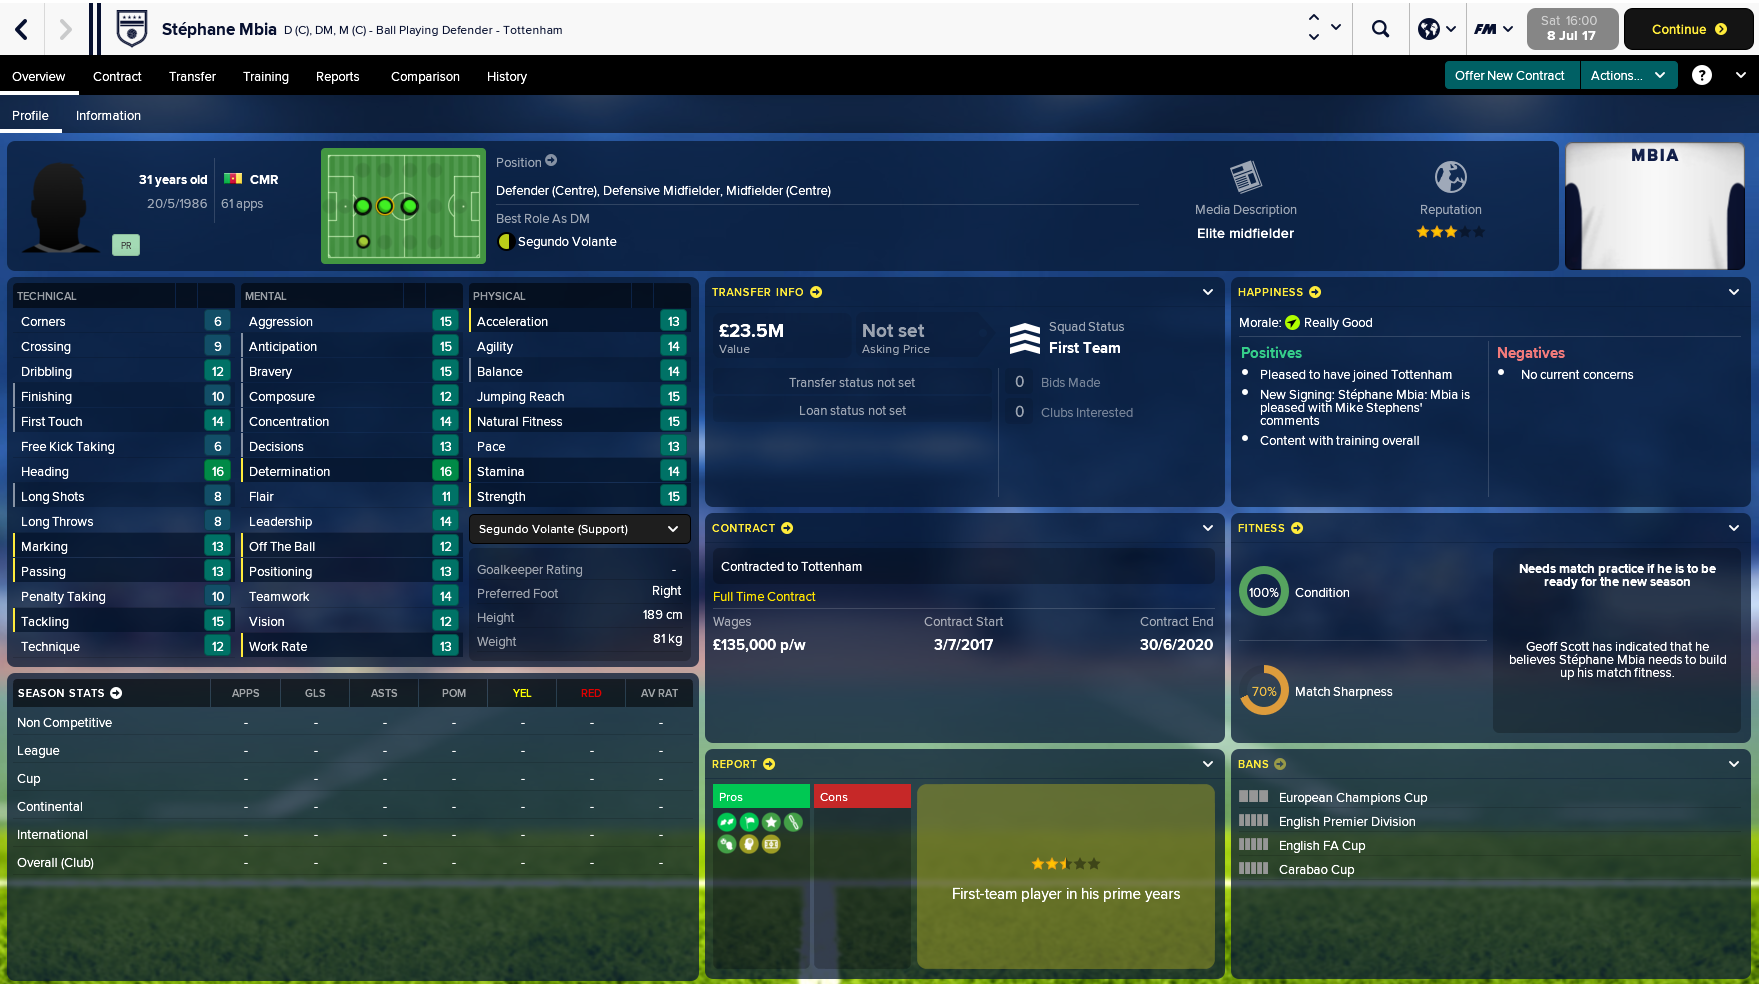 Mbia is back in London and in his prime years, according to FM!